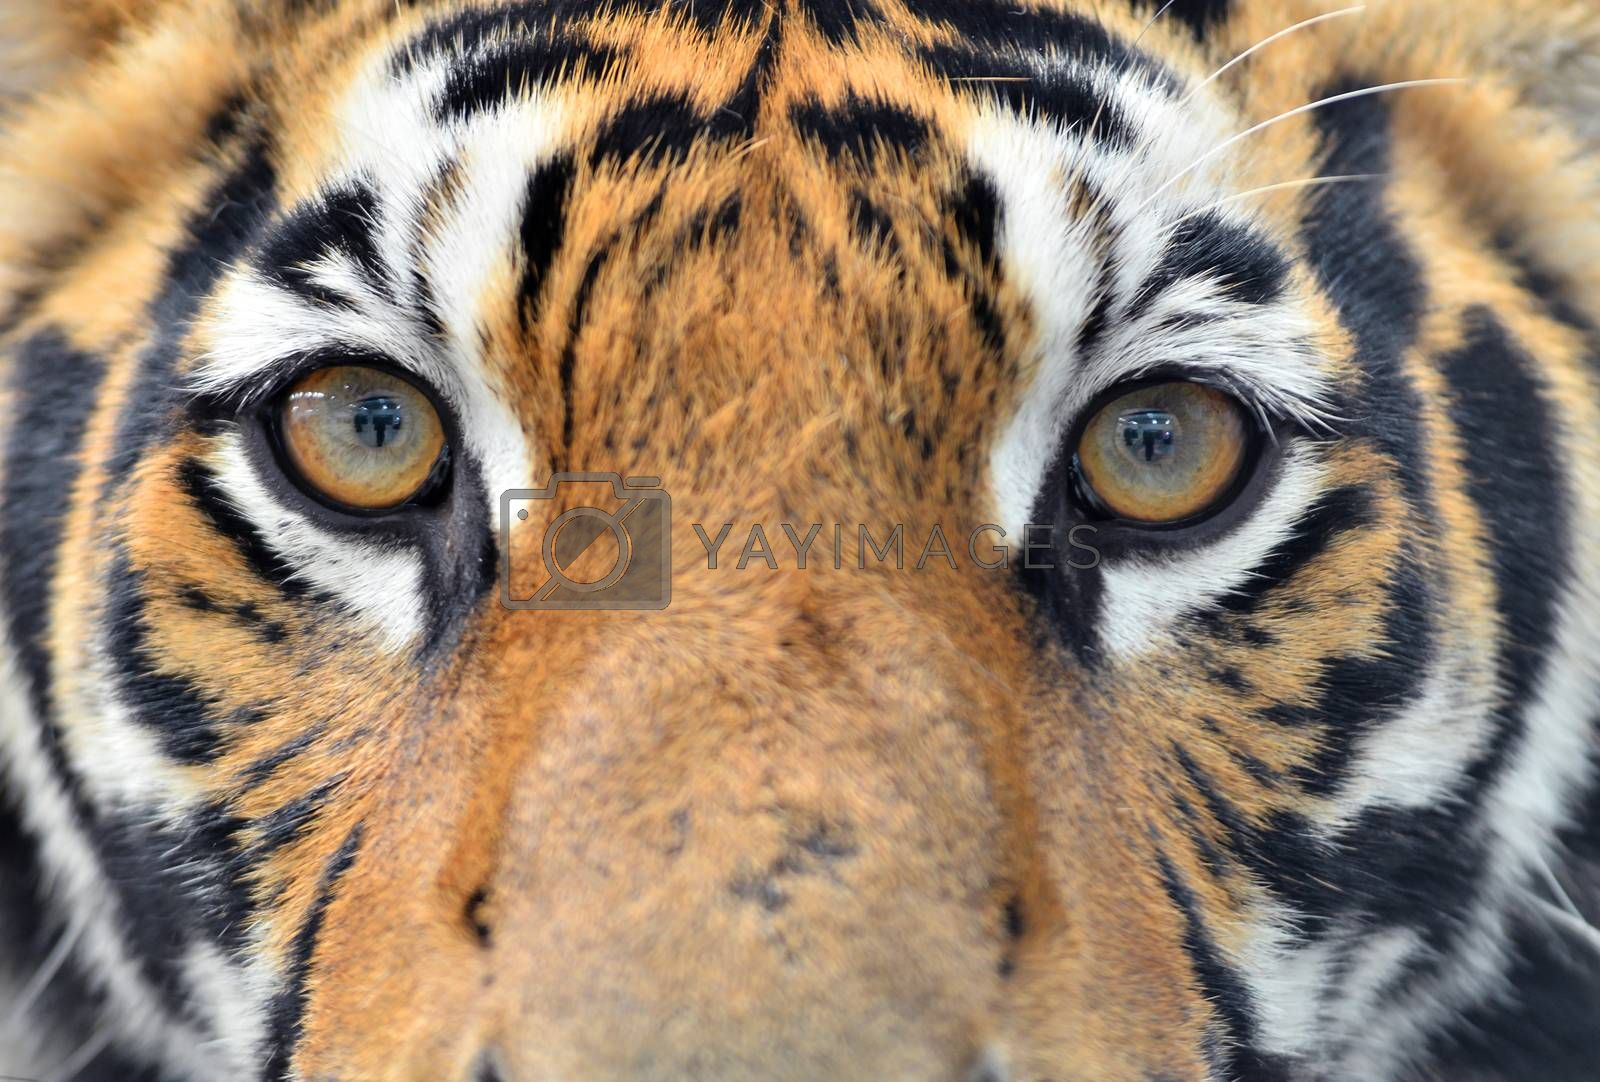 Royalty free image of bengal tiger eyes by anankkml